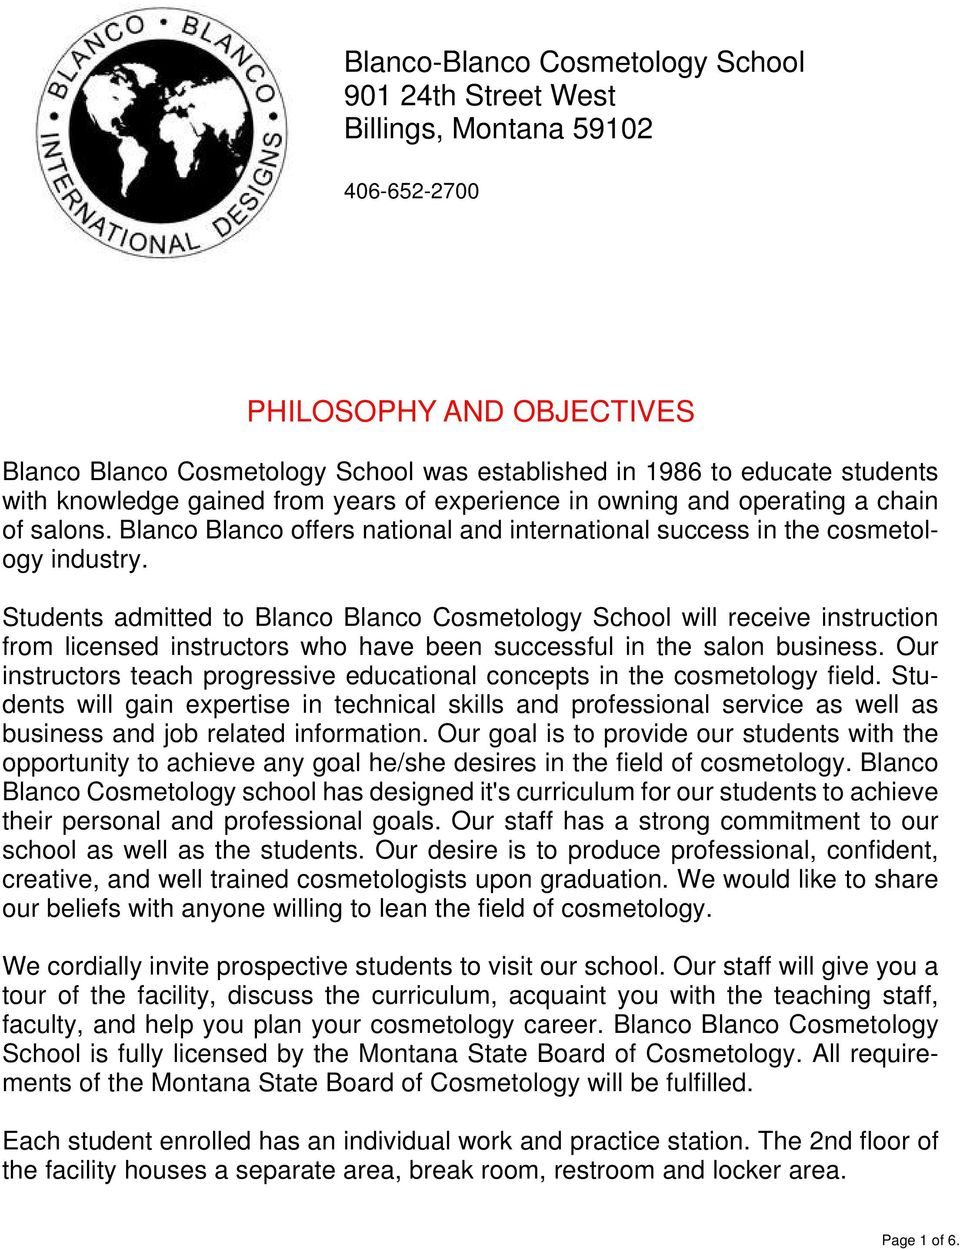 Students admitted to Blanco Blanco Cosmetology School will receive instruction from licensed instructors who have been successful in the salon business.